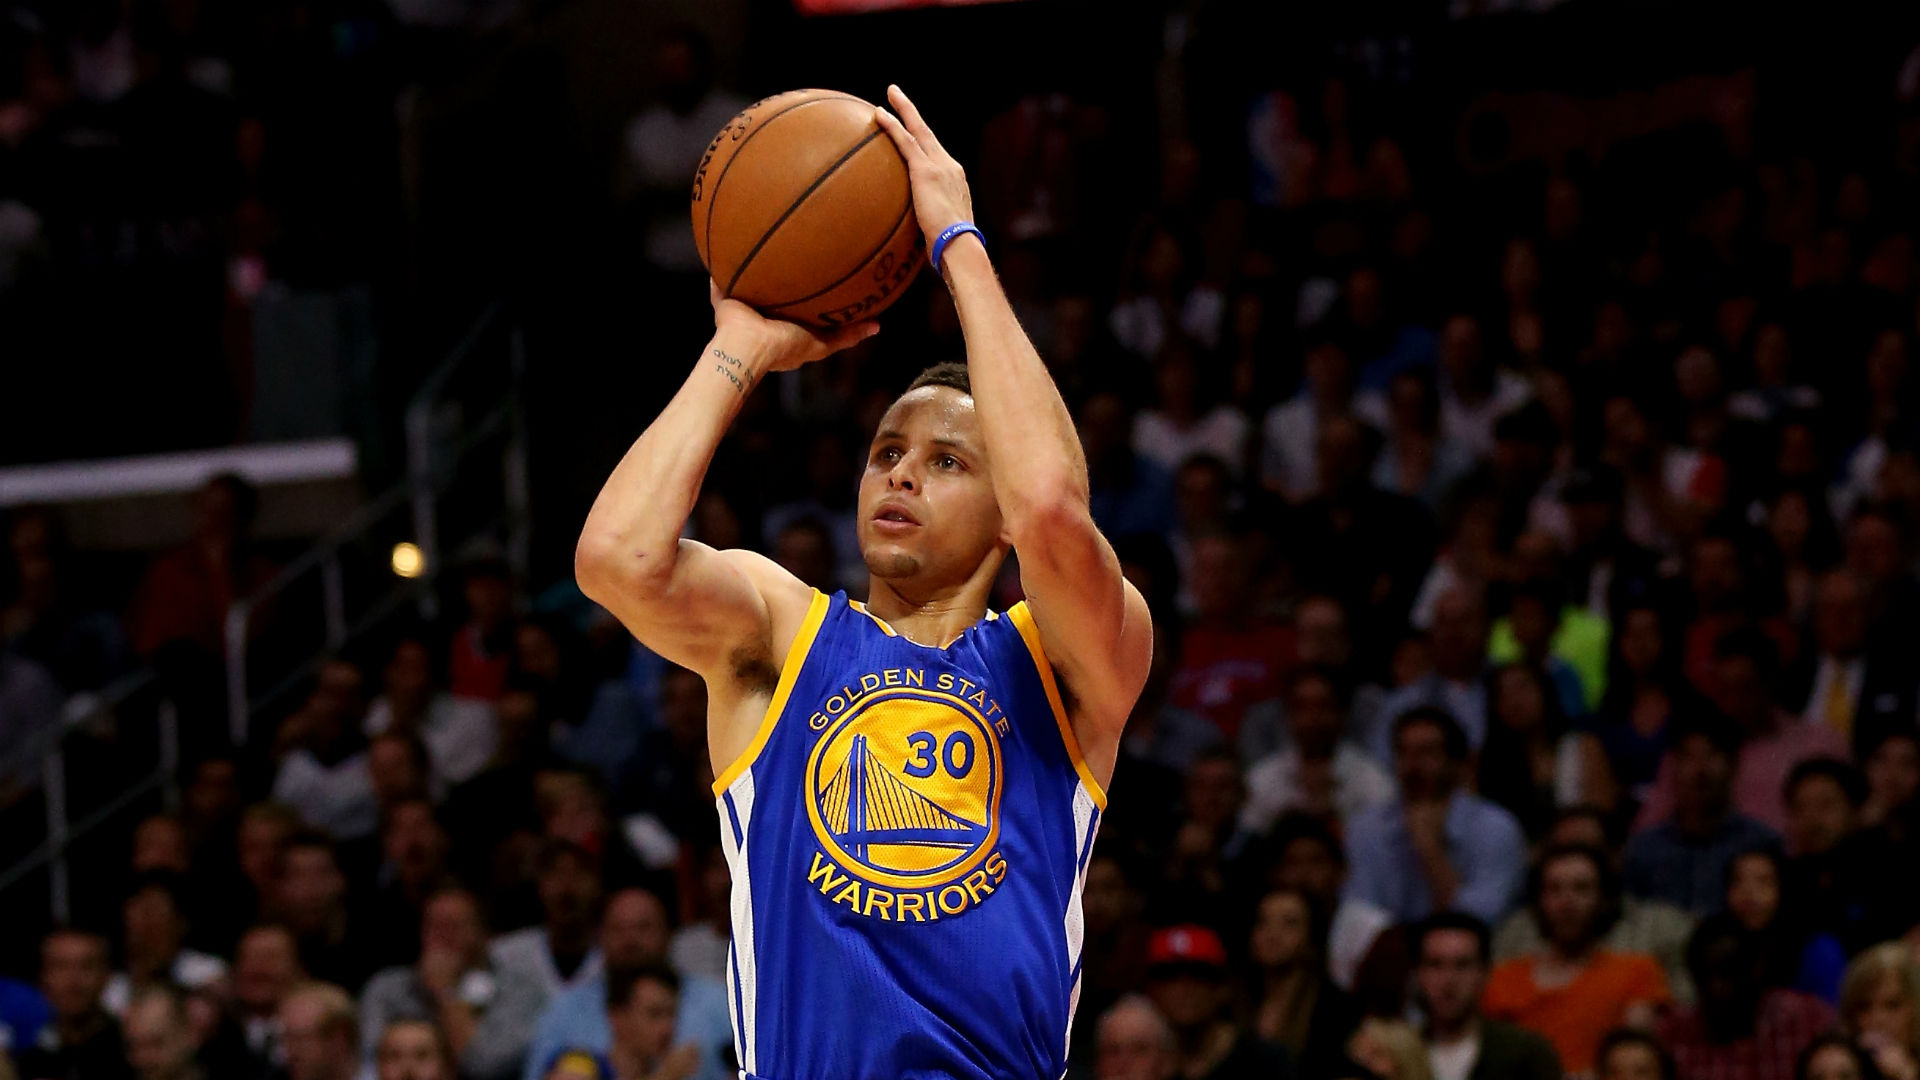 Steph Curry scores 30 as Warriors advance to Western Conference finals